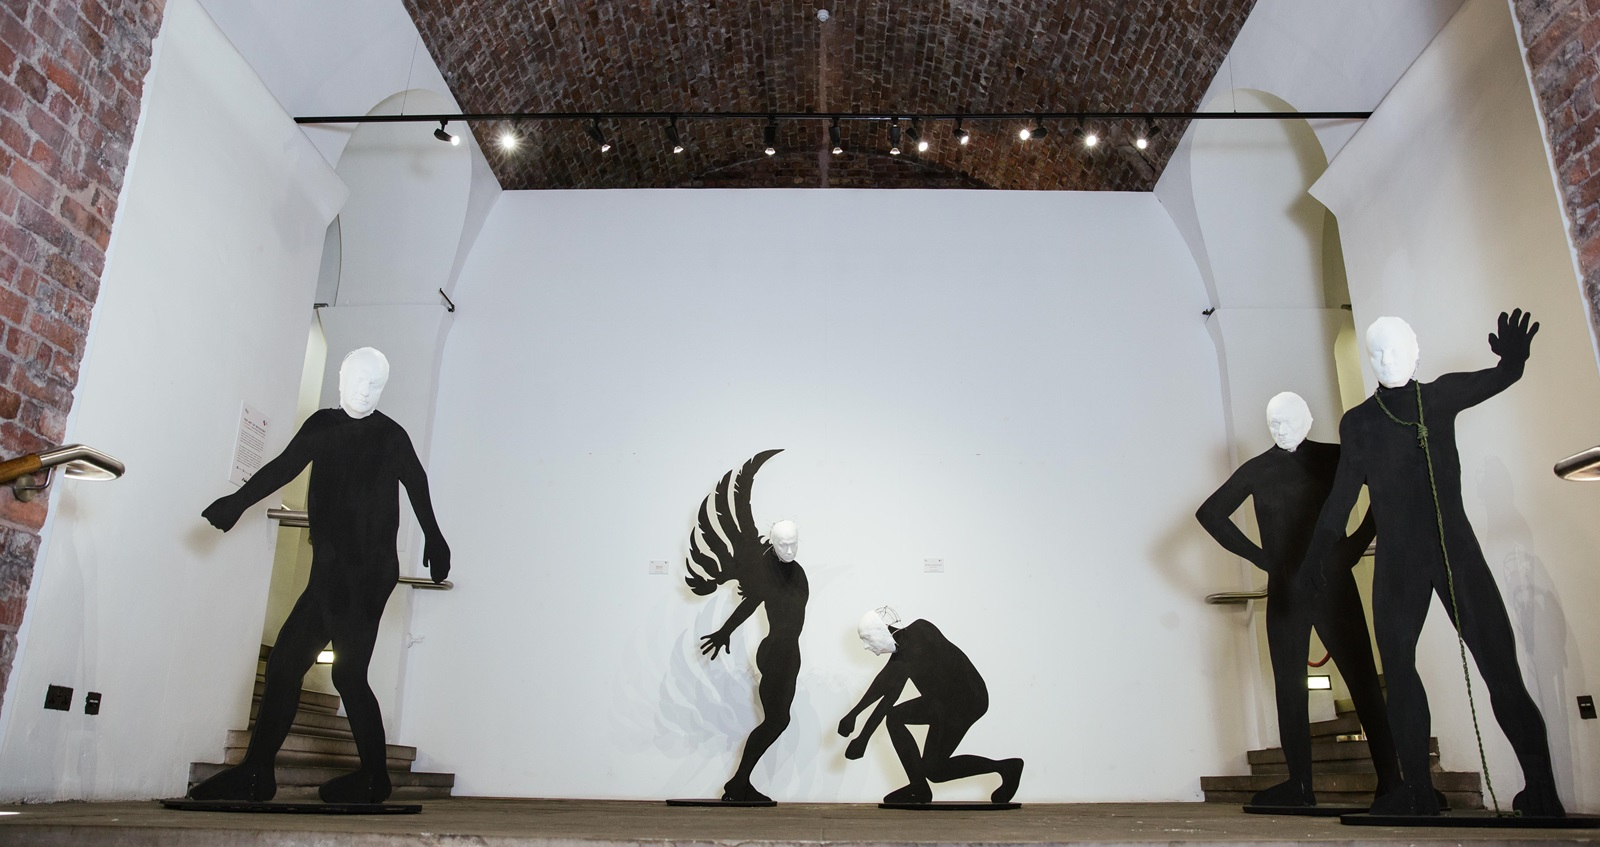 Exhibition of multiple sculptures